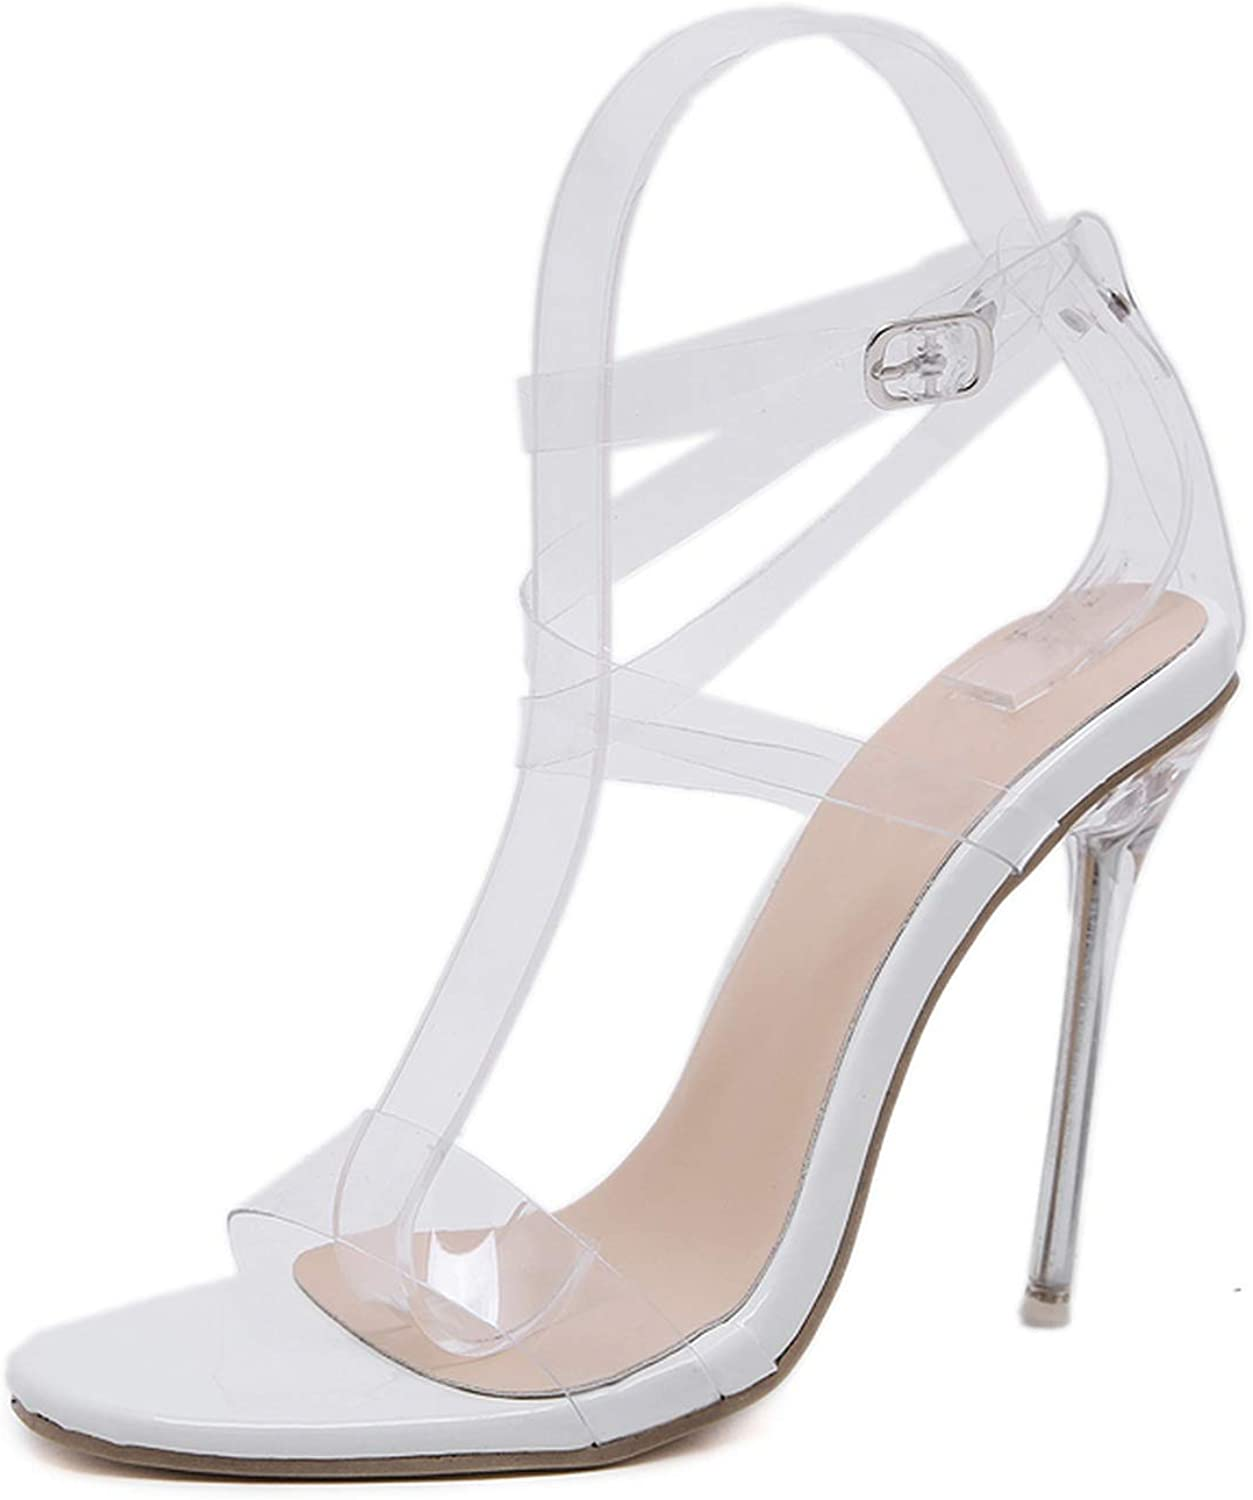 PVC Jelly Sandals Crystal Open Toed Women Transparent Thin Heels Sandals,White,5